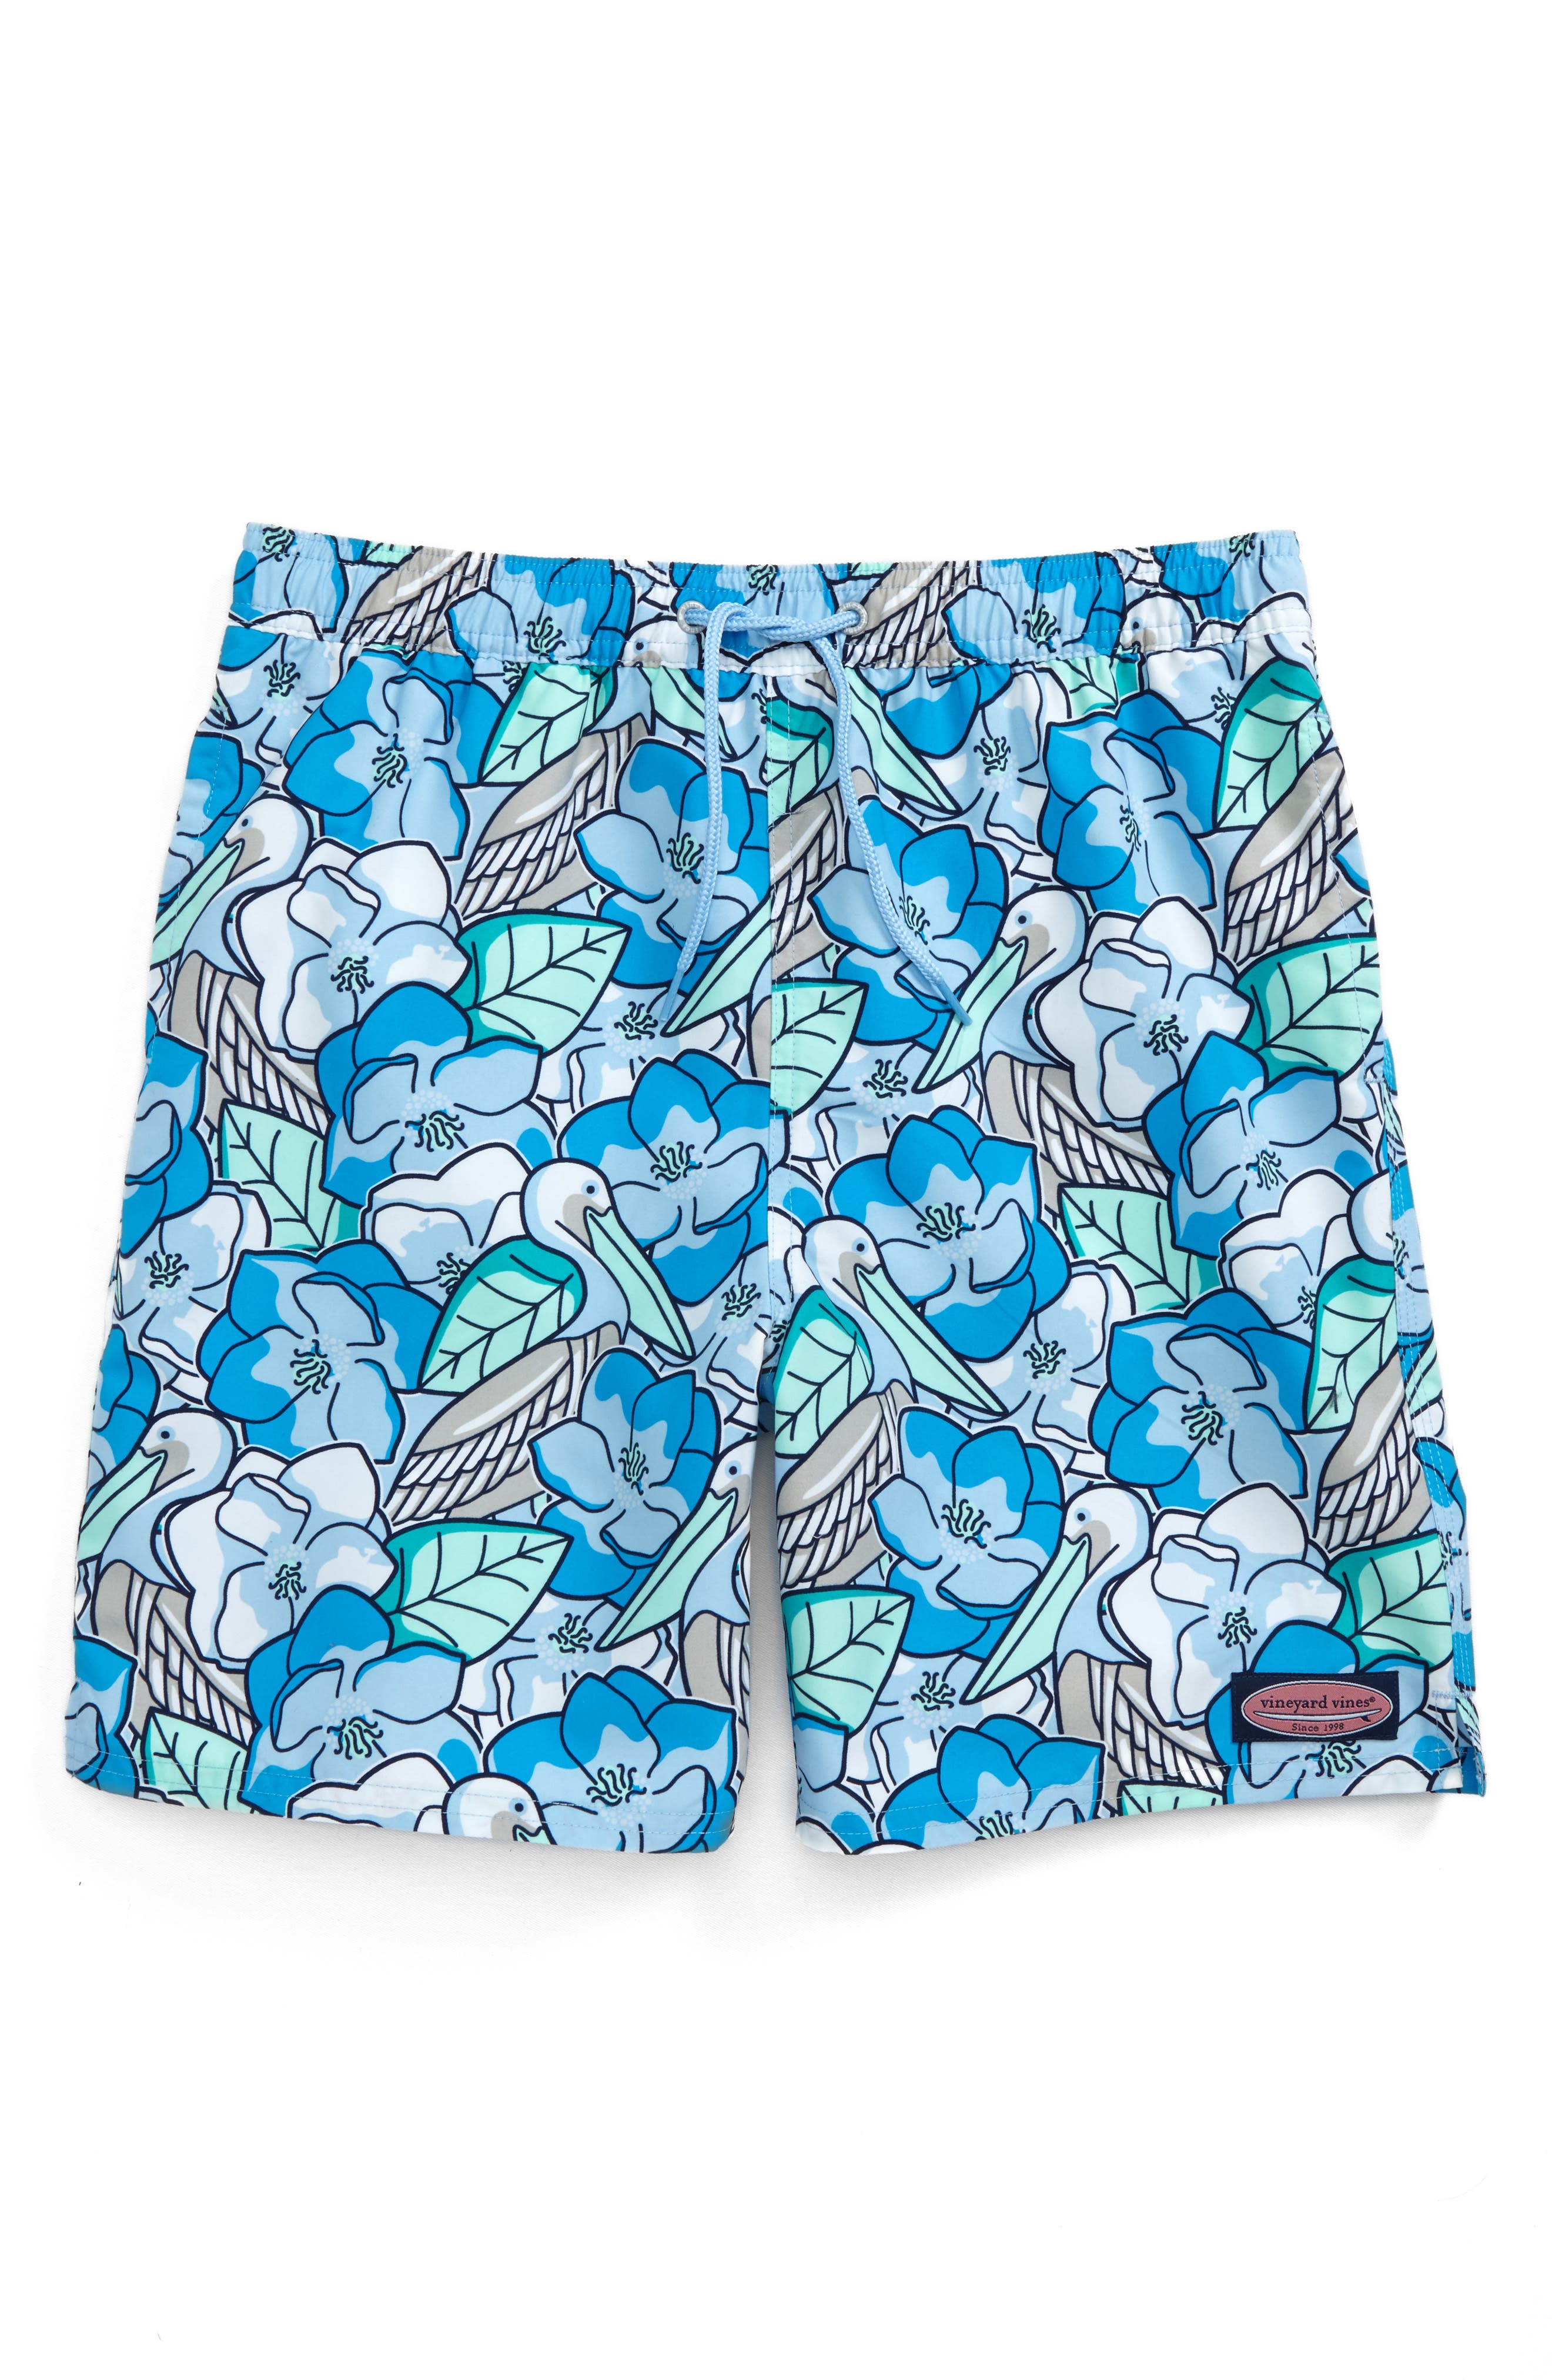 Pelican Magnolias Chappy Swim Trunks,                         Main,                         color, Airy Blue